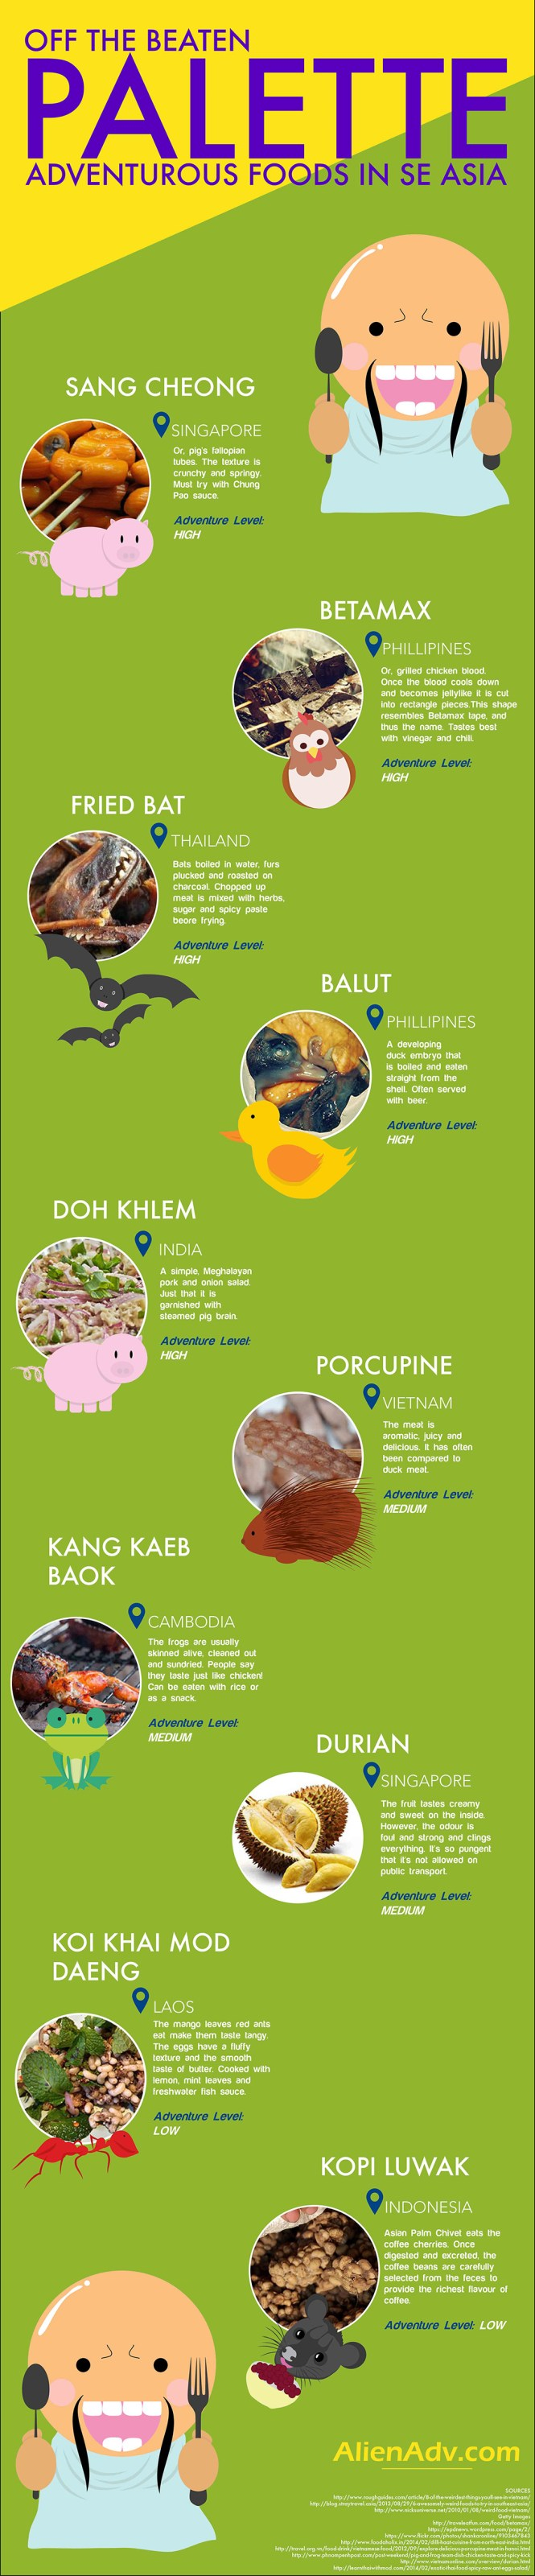 Unusual & Unheard of Food to Try in South East Asia